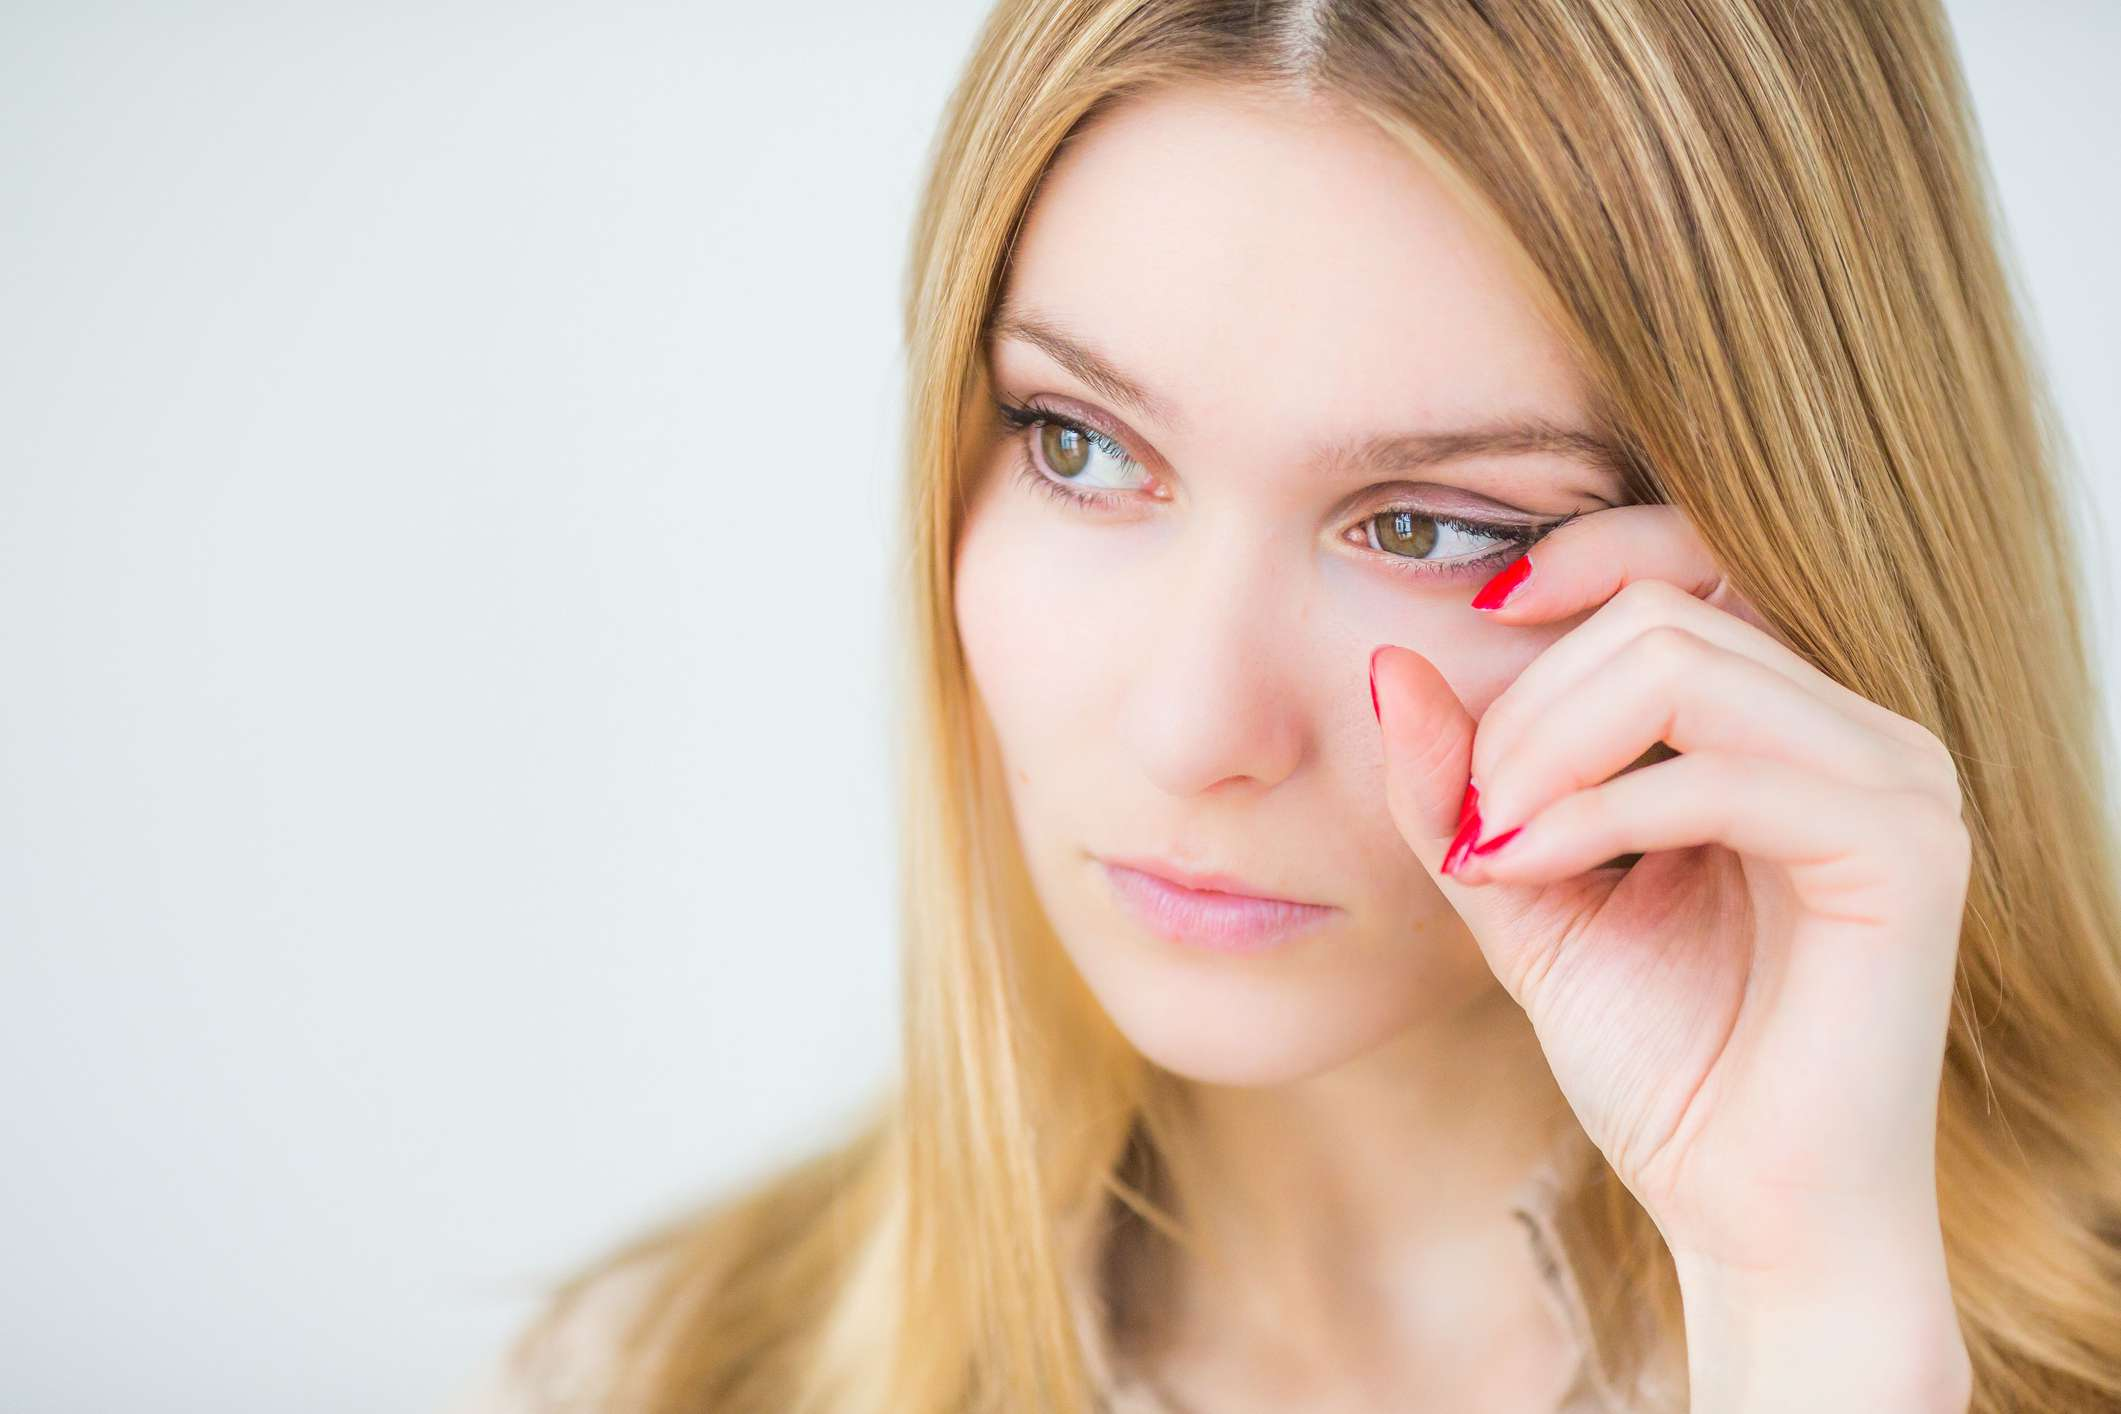 Woman on a white background scratching the corner of her eye